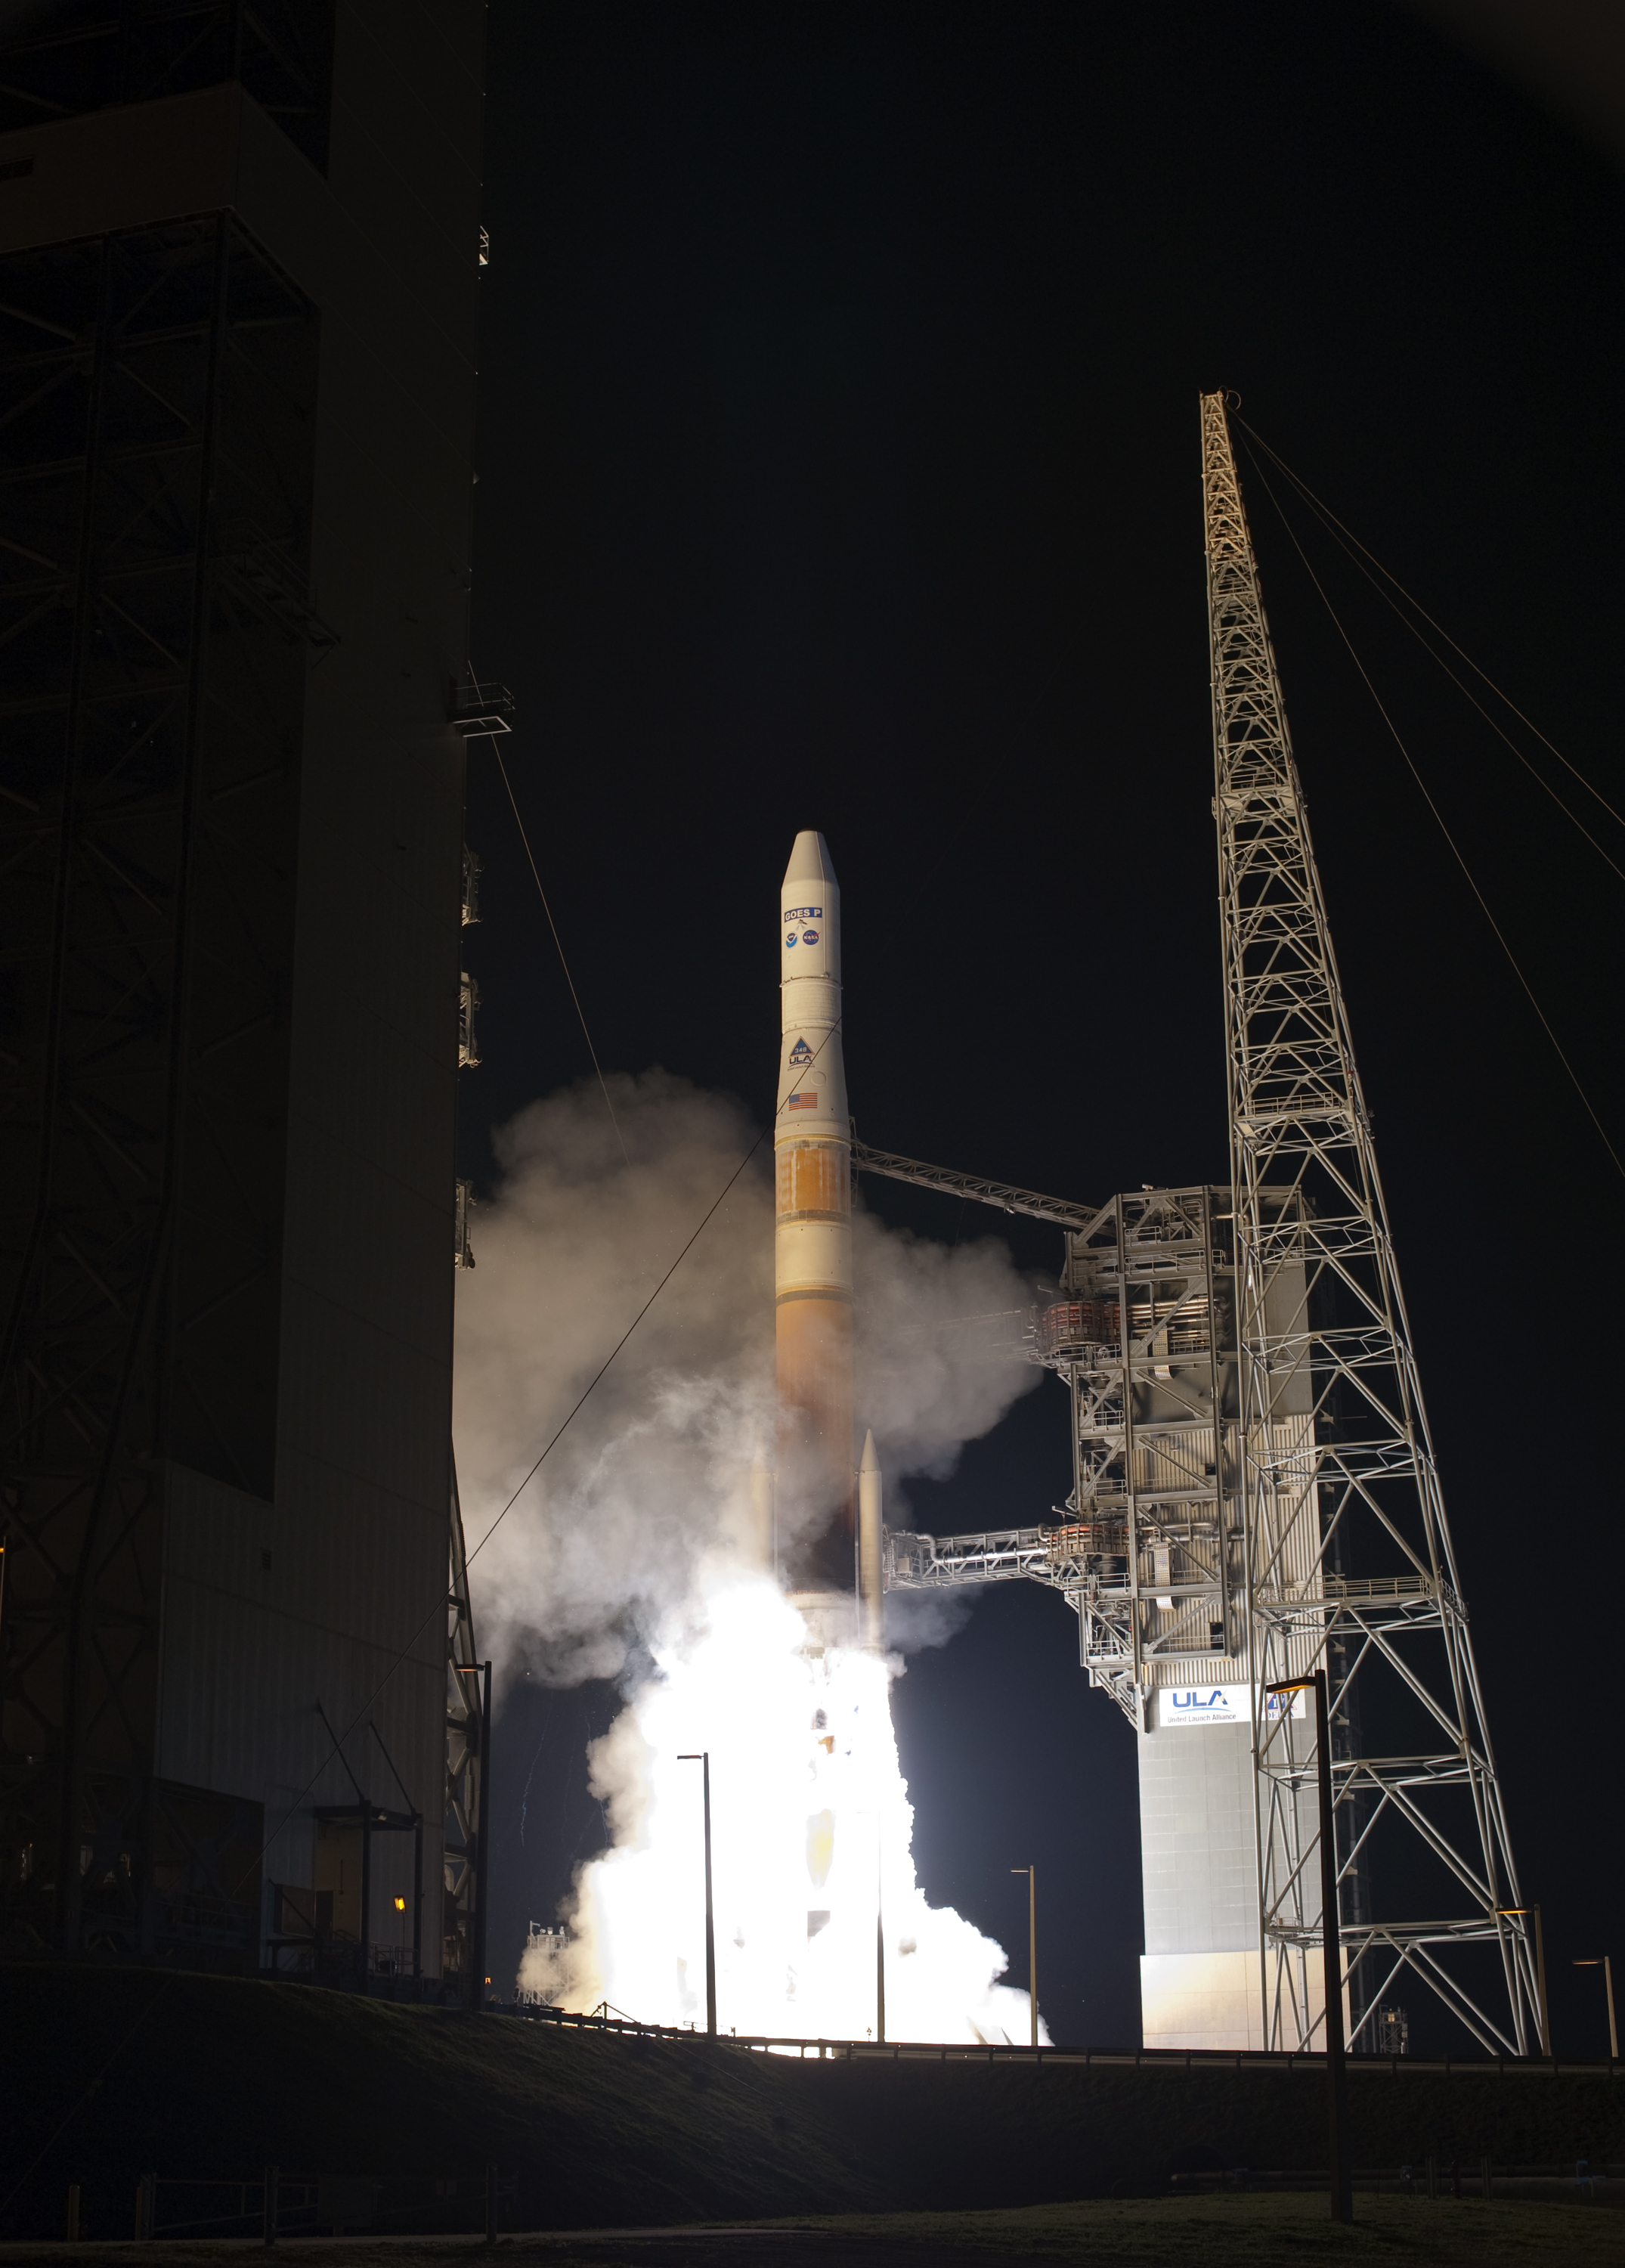 GOES-P launched by Delta IV rocket